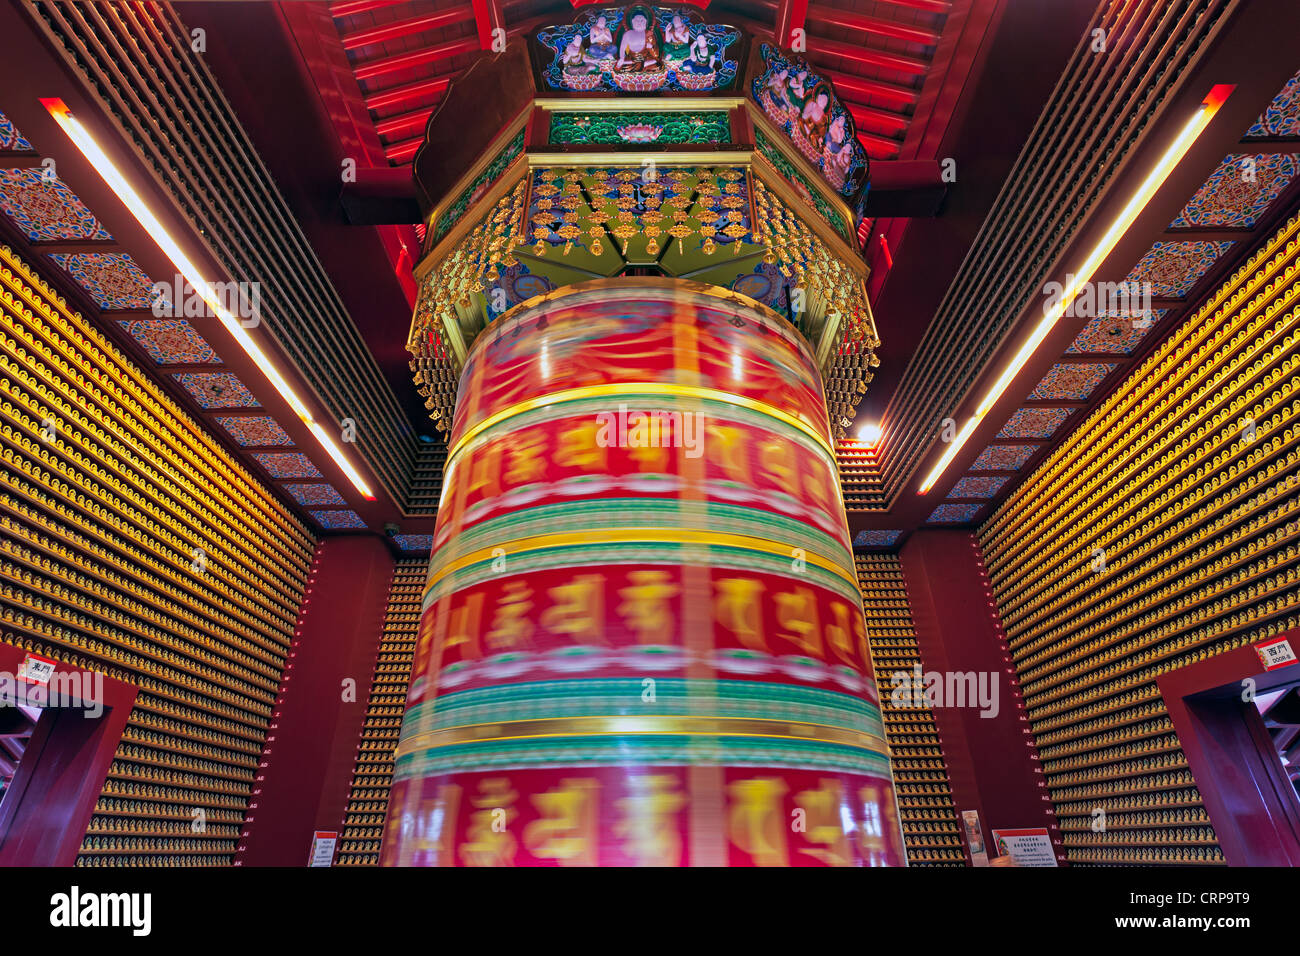 Prayer wheel inside the New Buddha Tooth Relic Temple and Museum on South Bridge road in Singapore, South East Asia - Stock Image